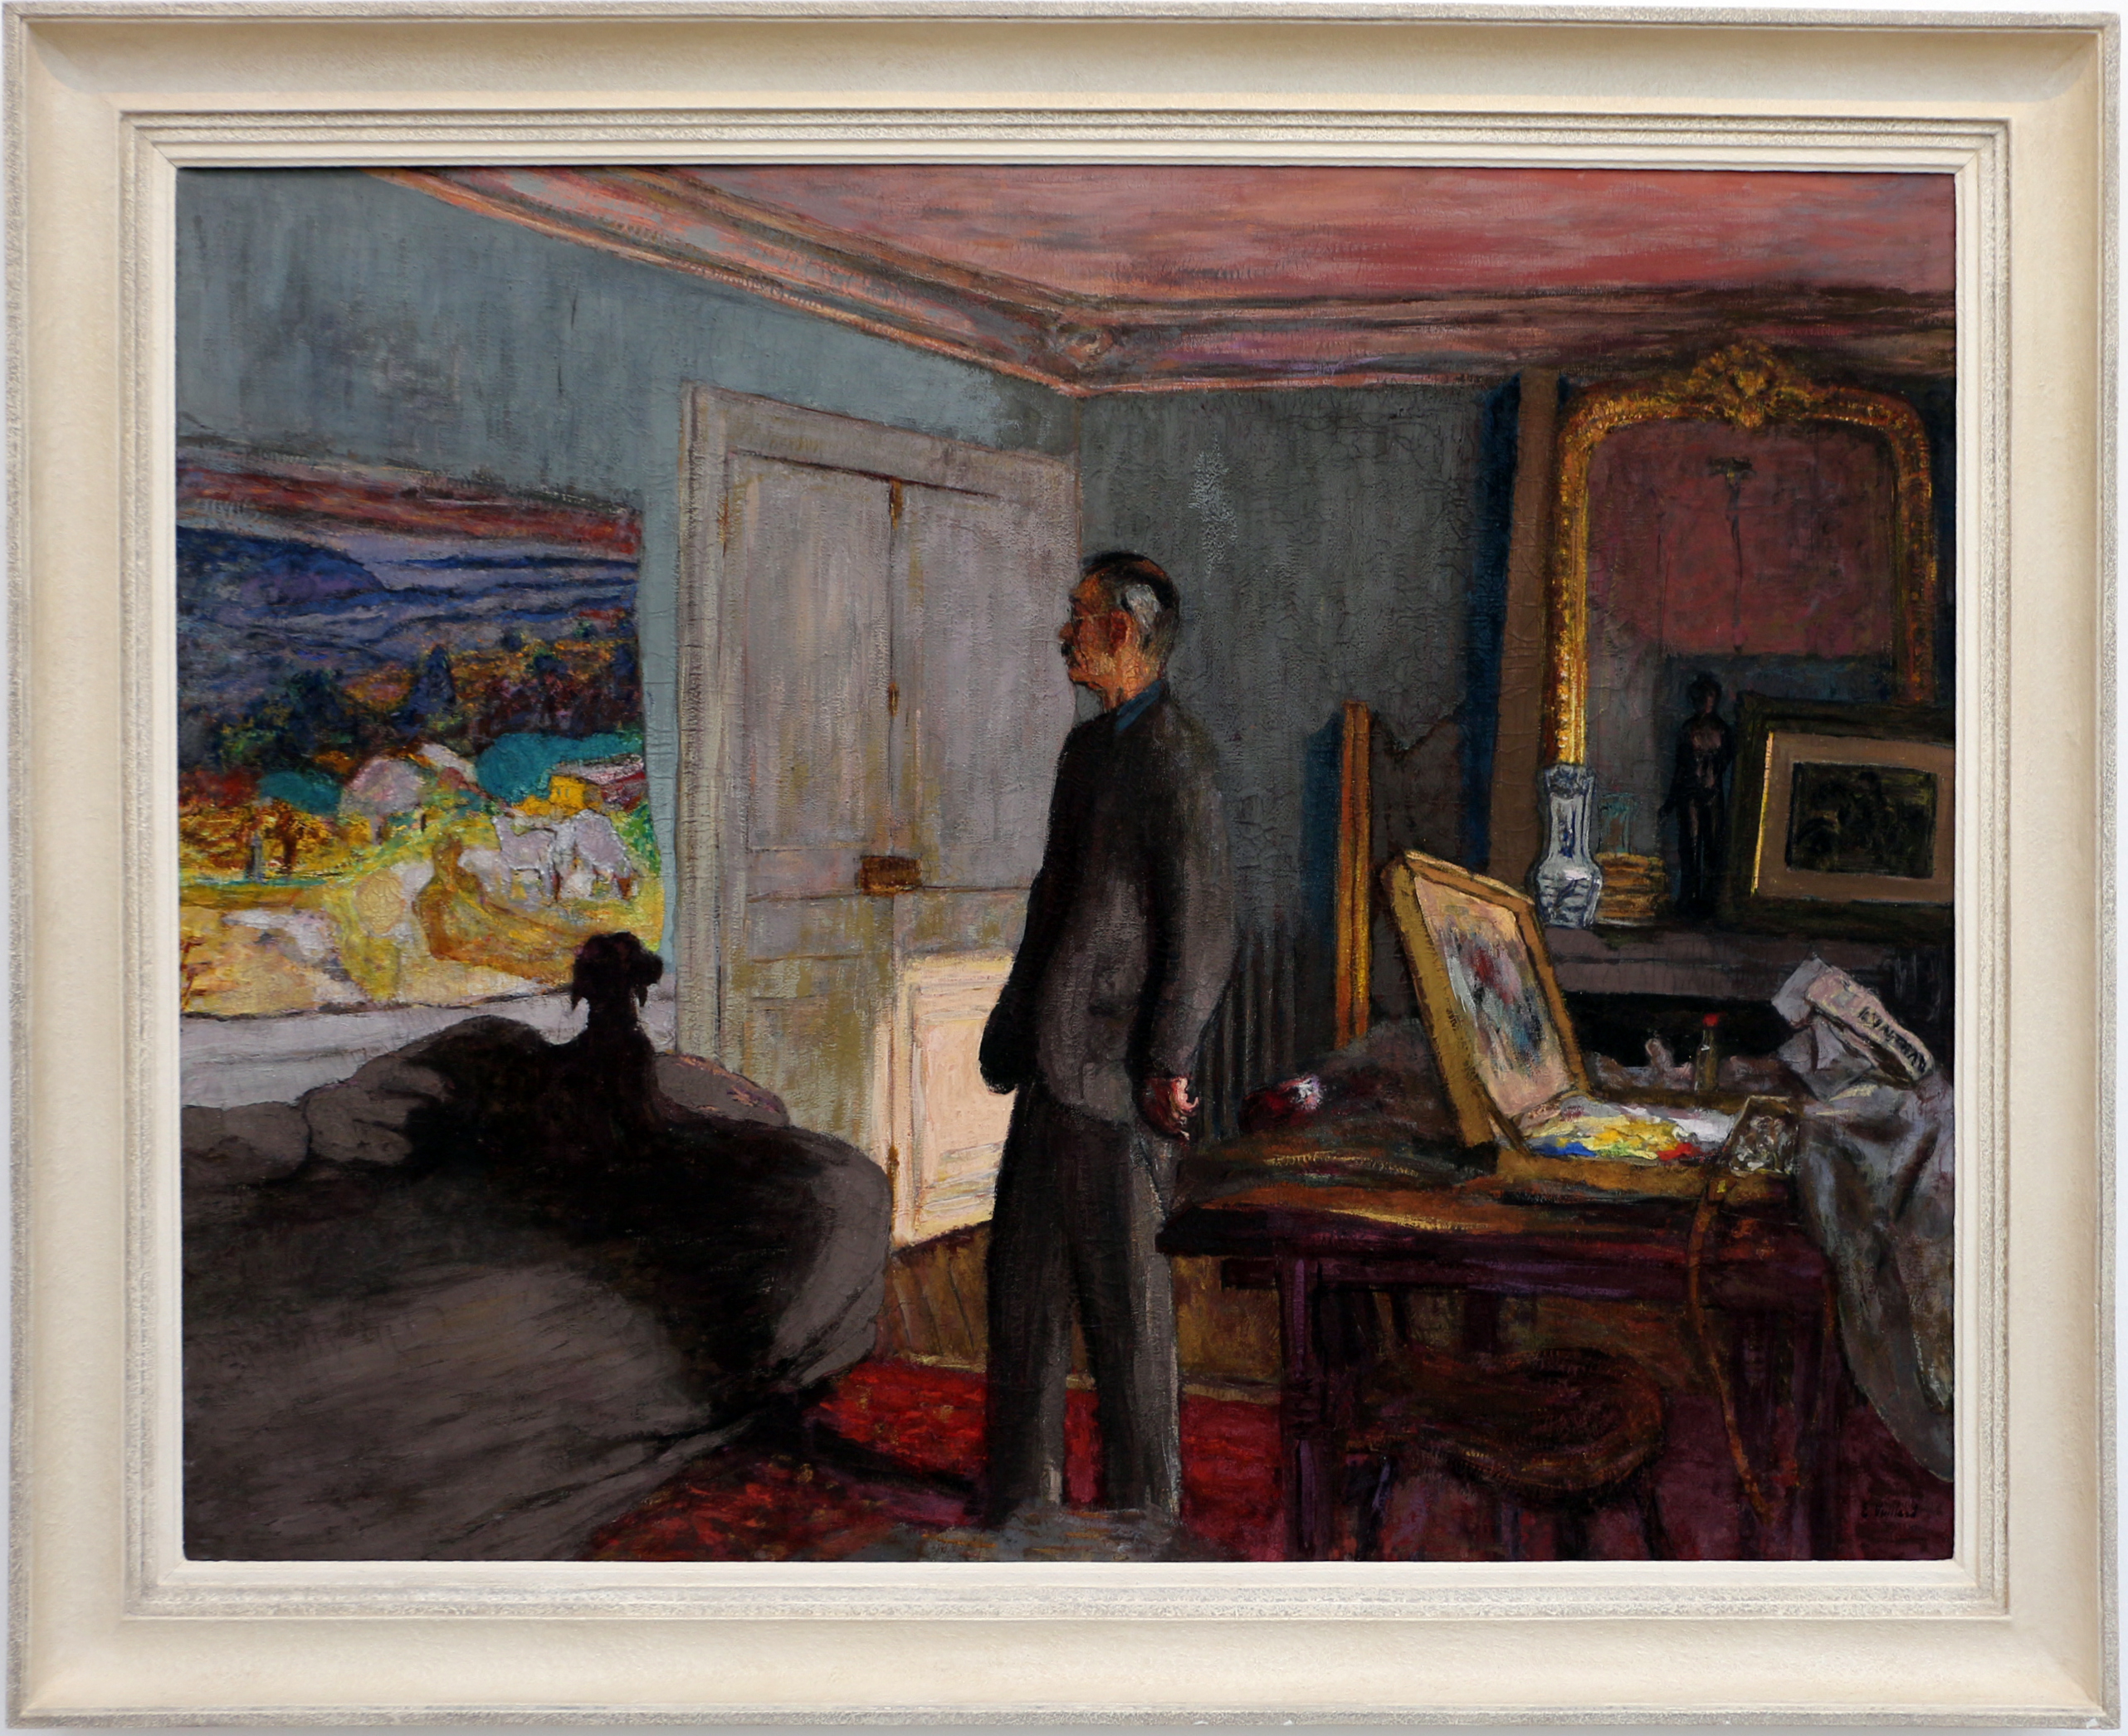 941 For 2016 >> File:Édouard vuillard, ritratto di pierre bonnard, 1930-35 ...